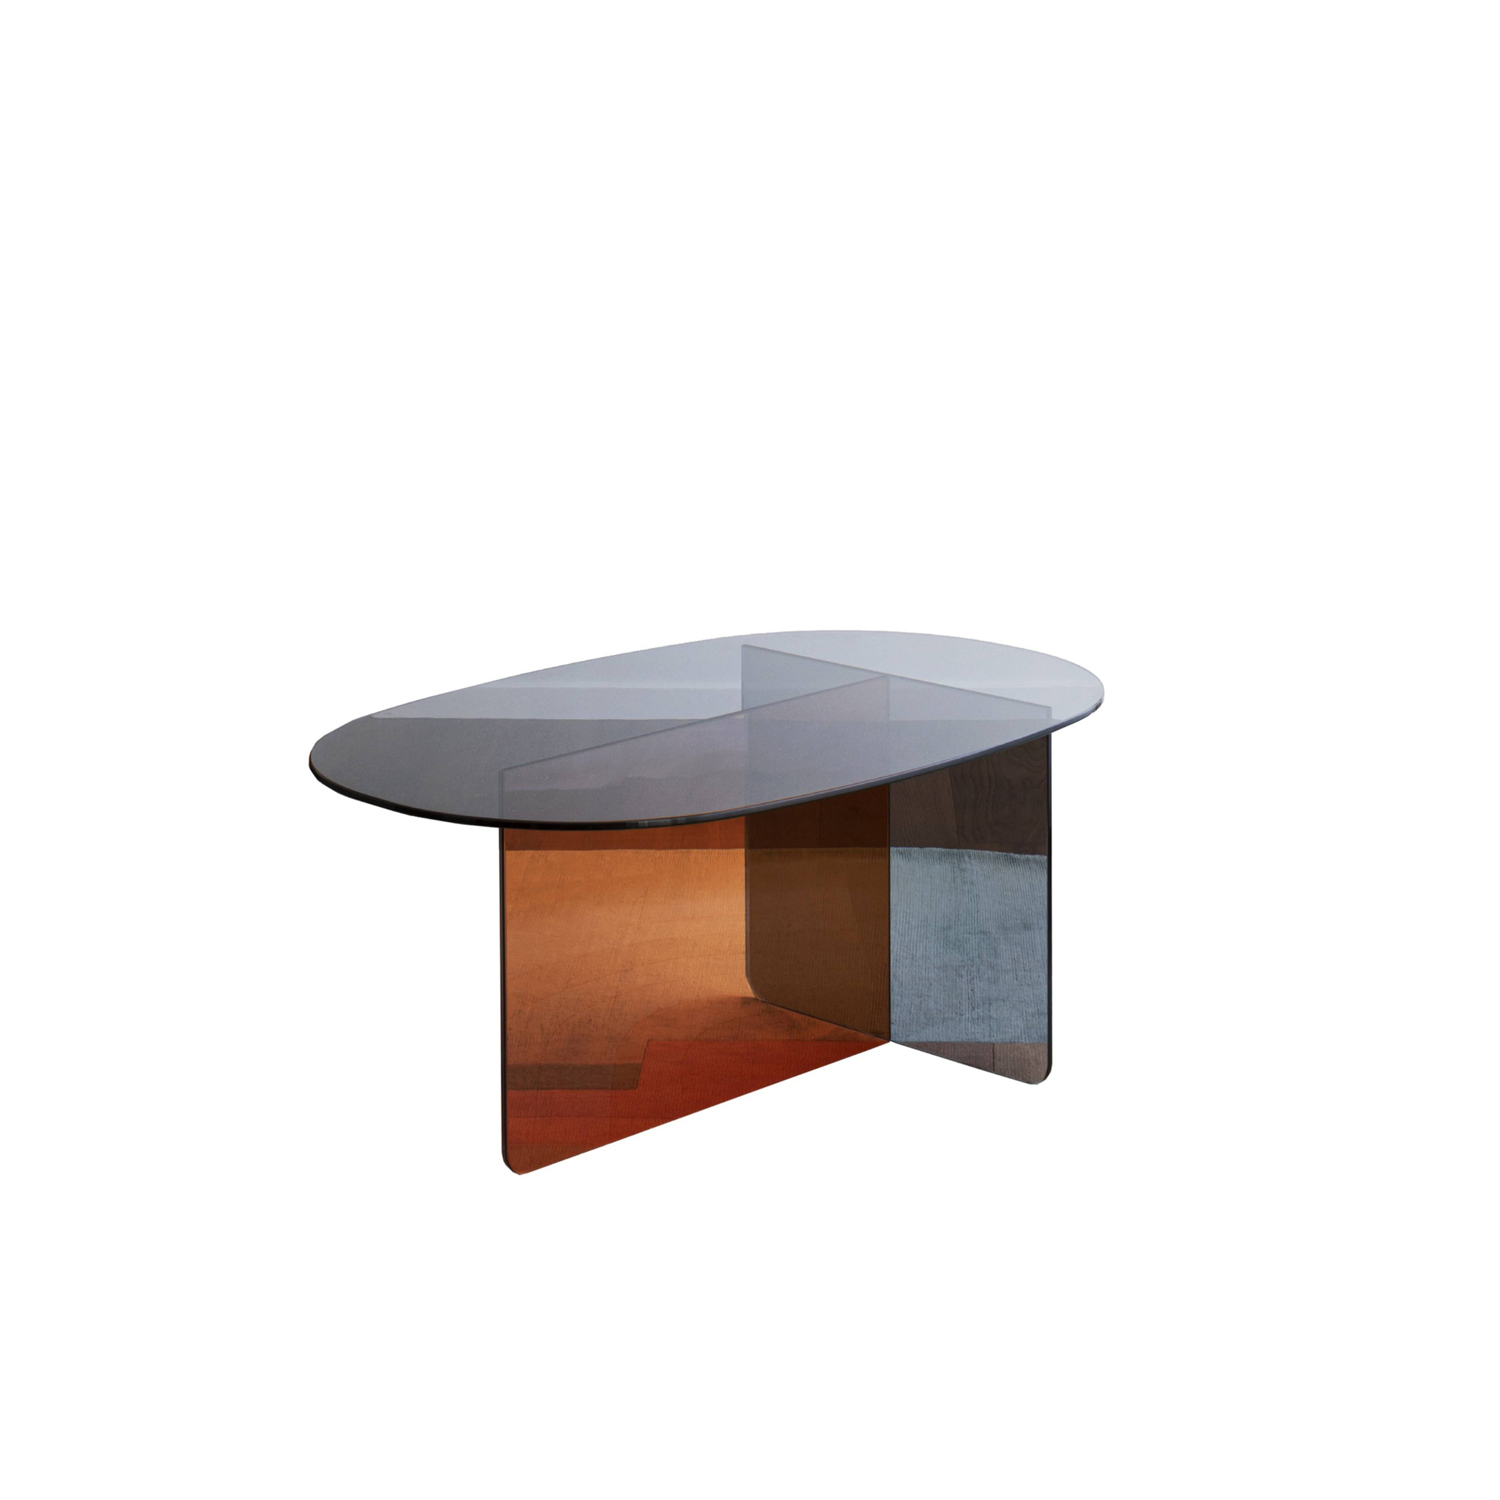 Chap Coffee Table - Chap is a primary object that finds expression through shape and colour. Organic and primitive in taste, this essential element sports the striking decorative texture of Palladio Moro marble or the transparency of glass. | Matter of Stuff